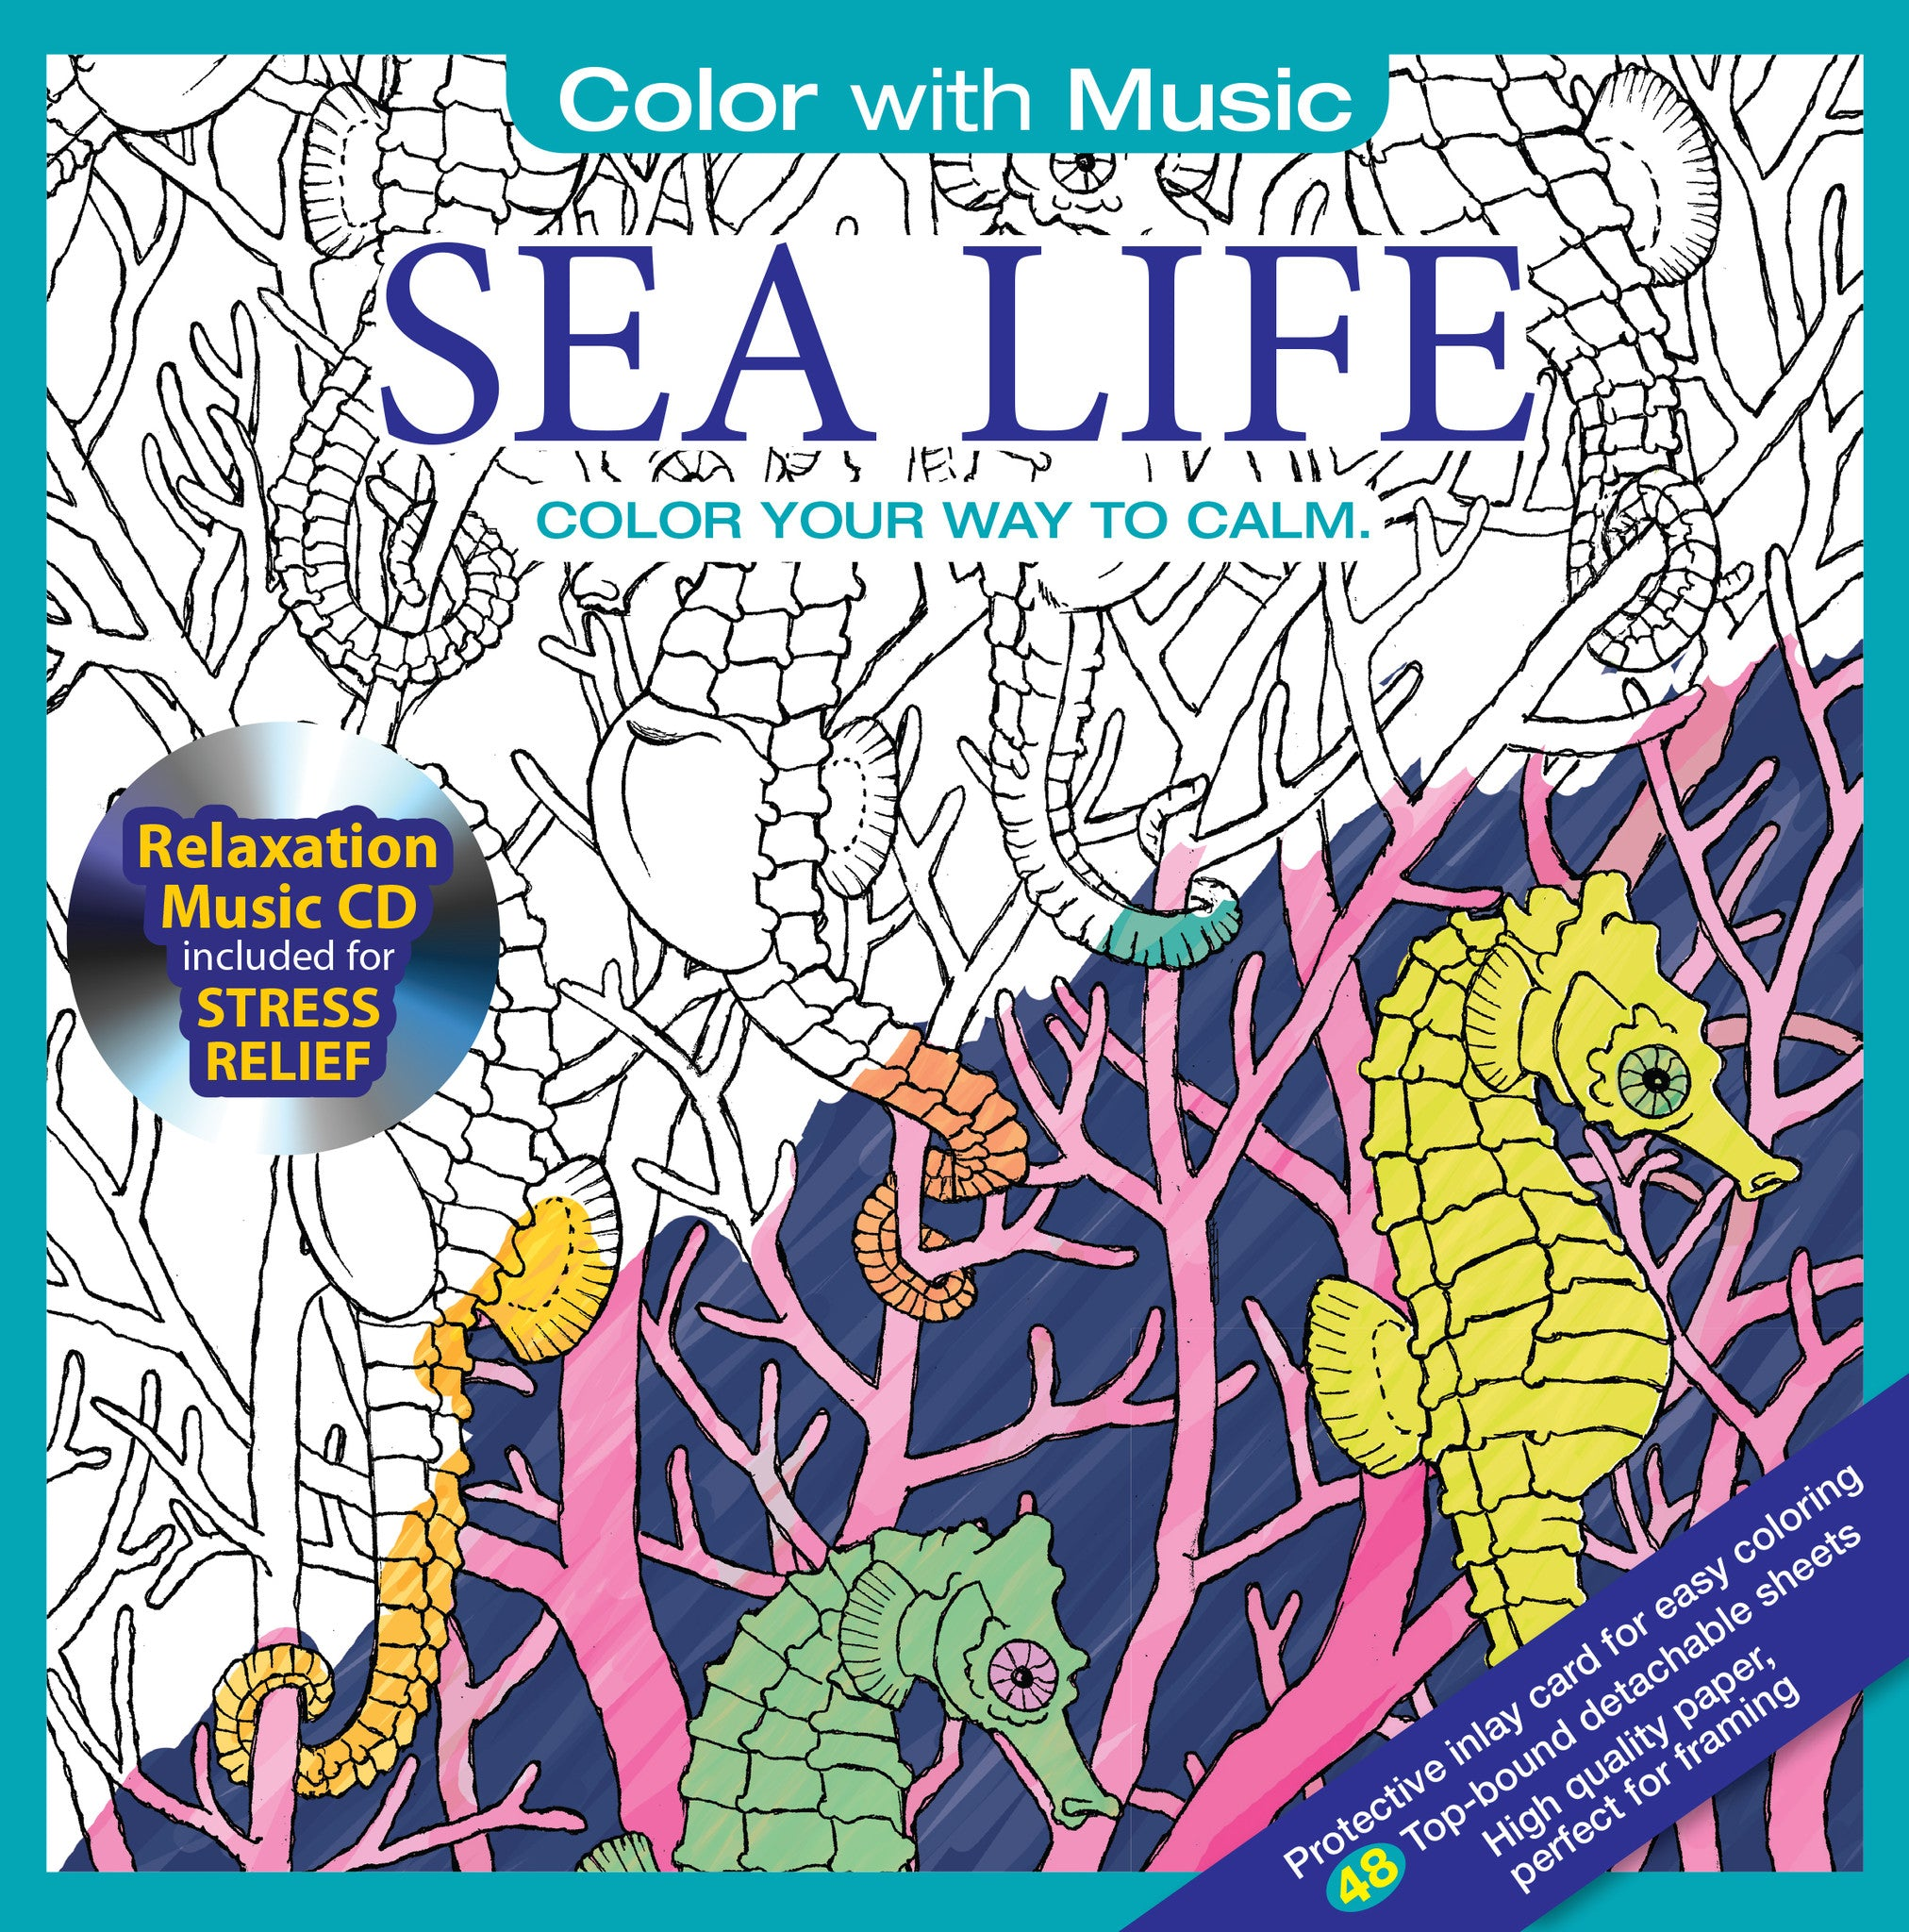 Coloring Book Album Cover : RELAXATION MUSIC CD COLORING BOOKS Color With Music